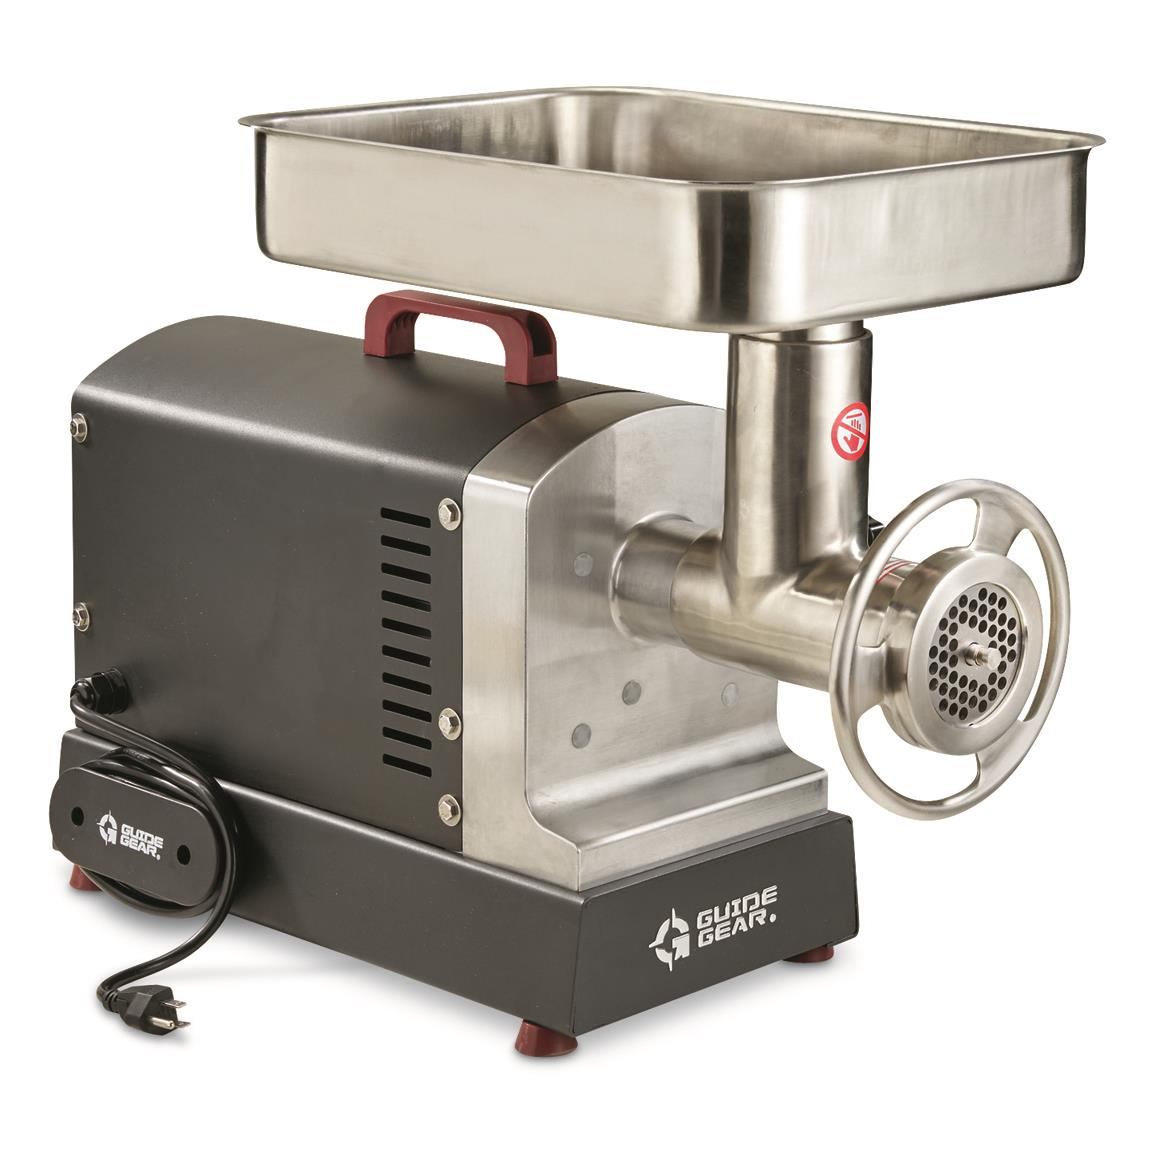 Guide Gear #22 Electric Commercial Grade Meat Grinder, 1 hp